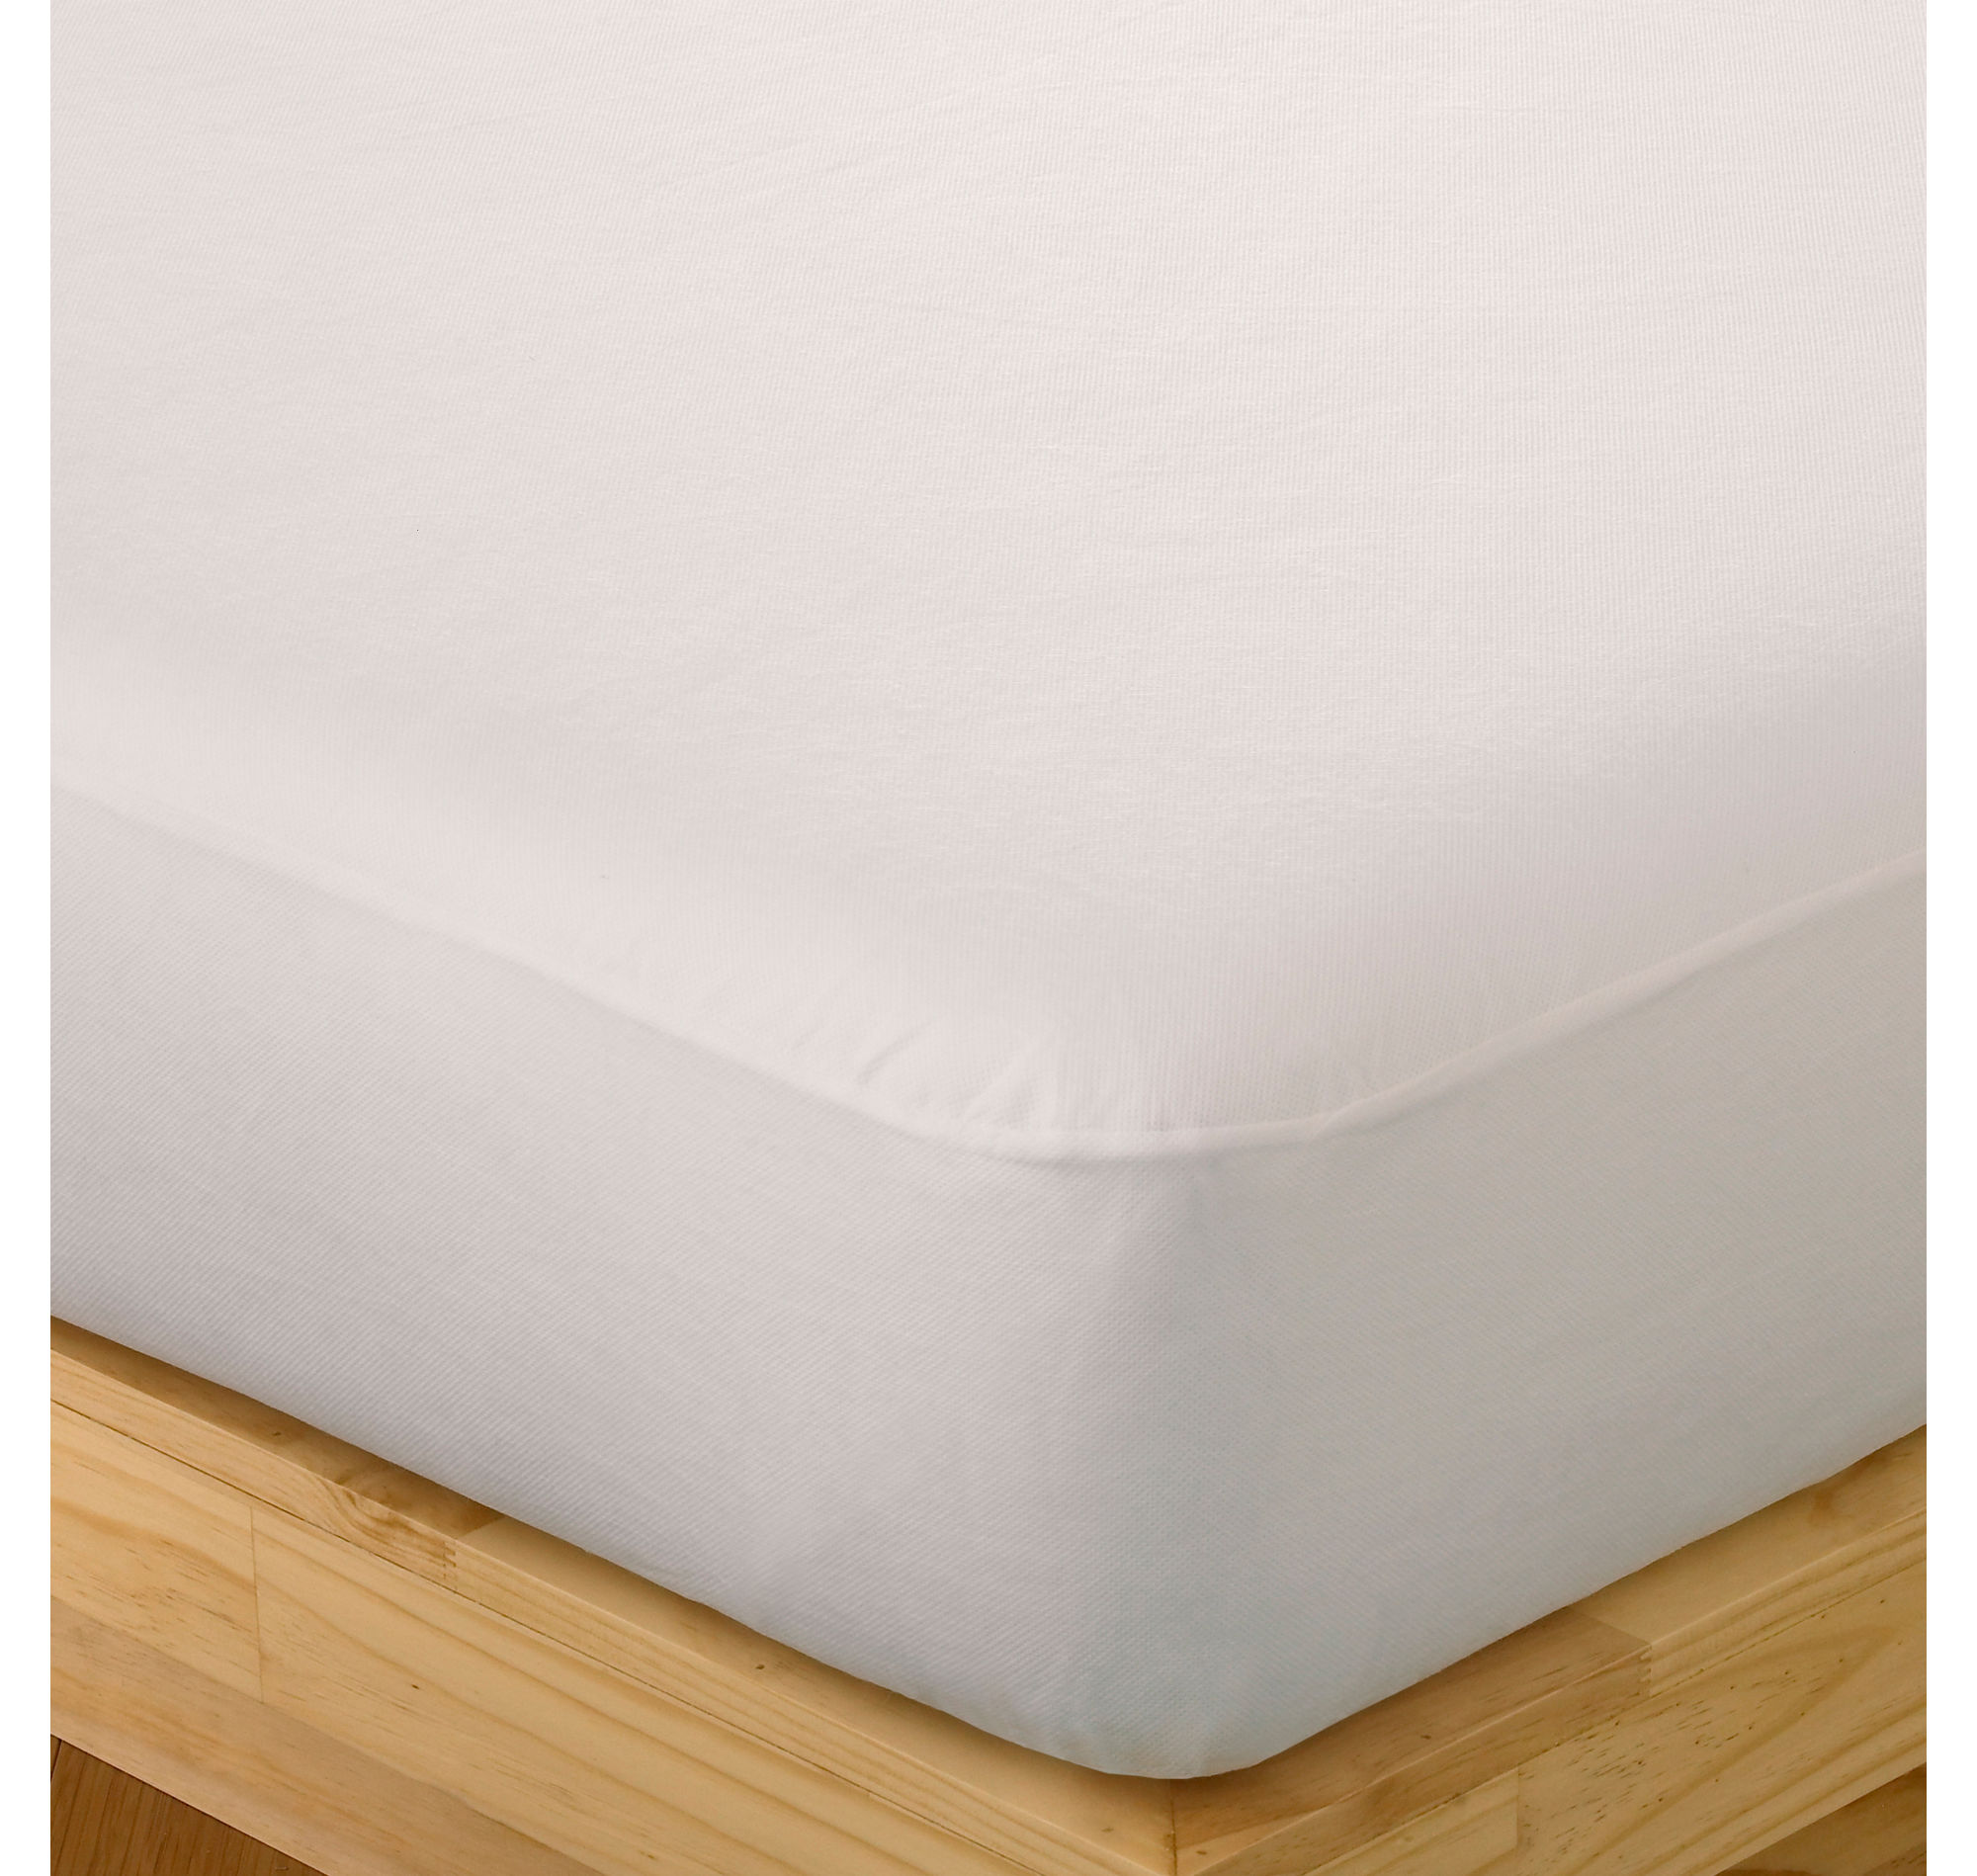 Jcpenney Bed Bug Mattress Cover Search